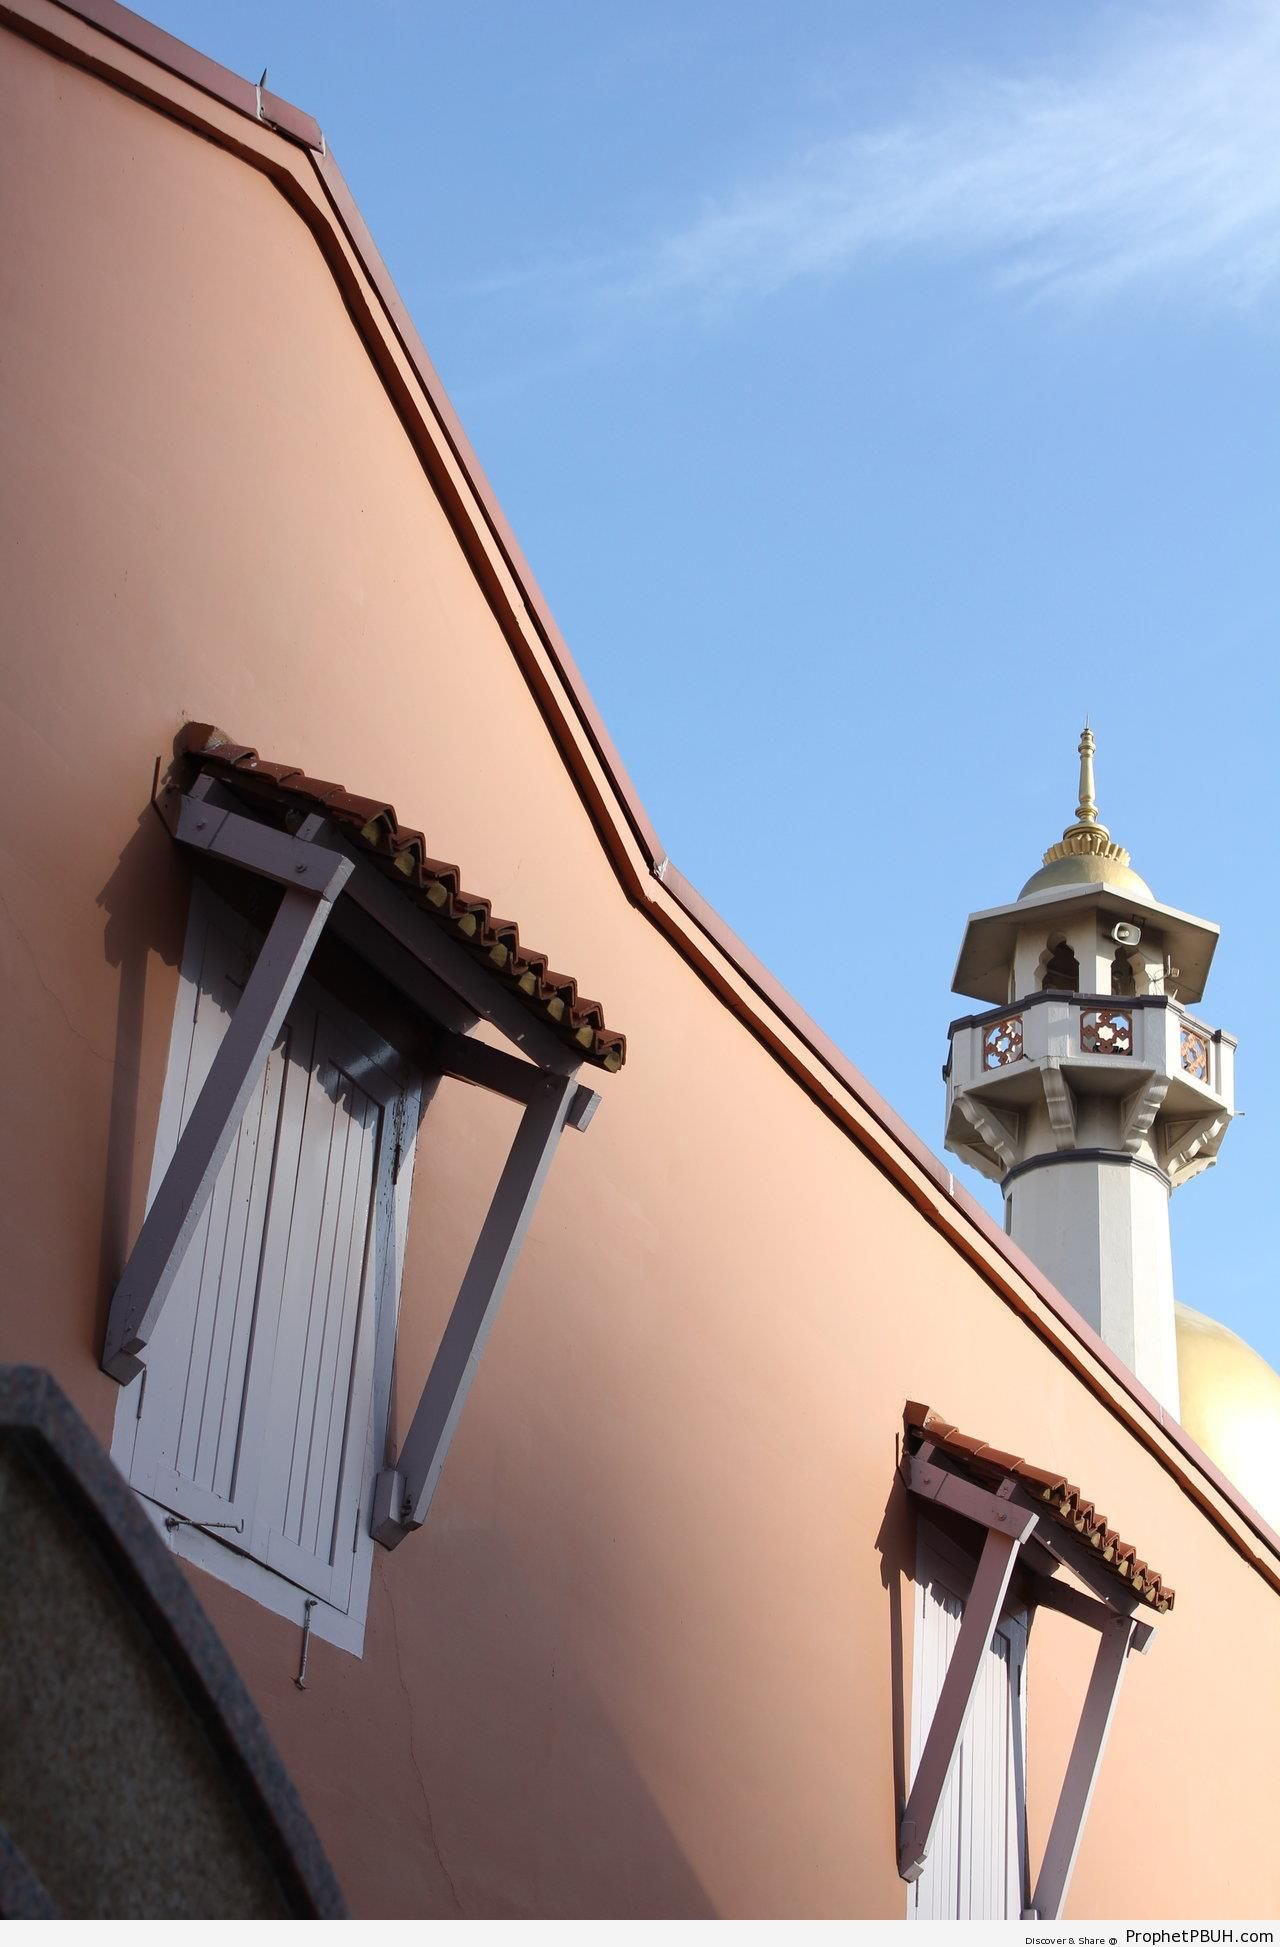 Early Morning Minaret (Kampong Glam, Singapore) - Islamic Architecture